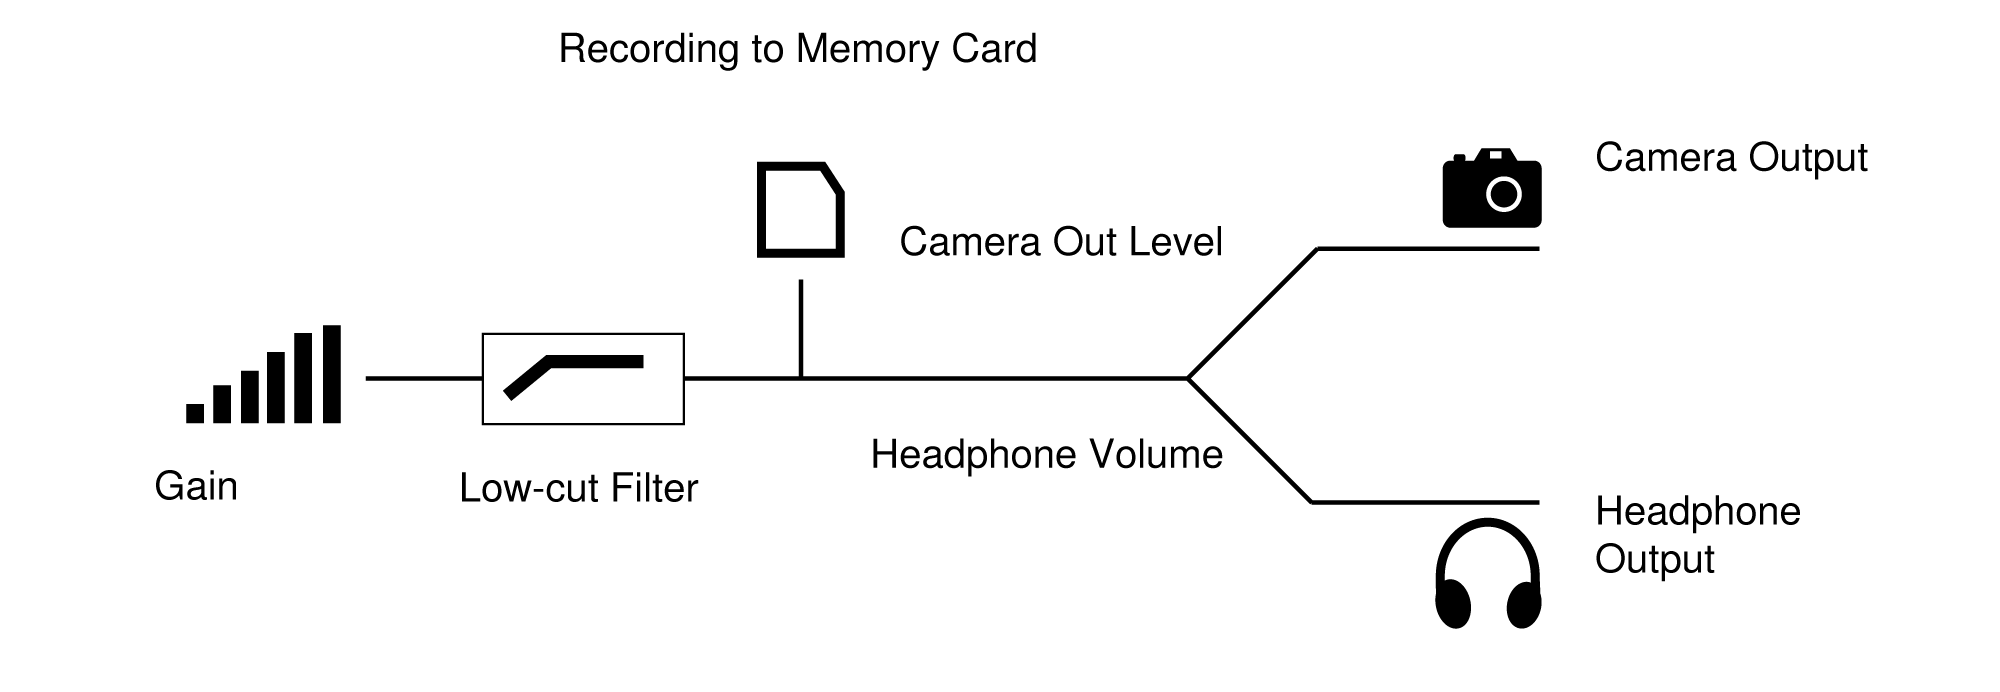 hight resolution of format the memory card before use